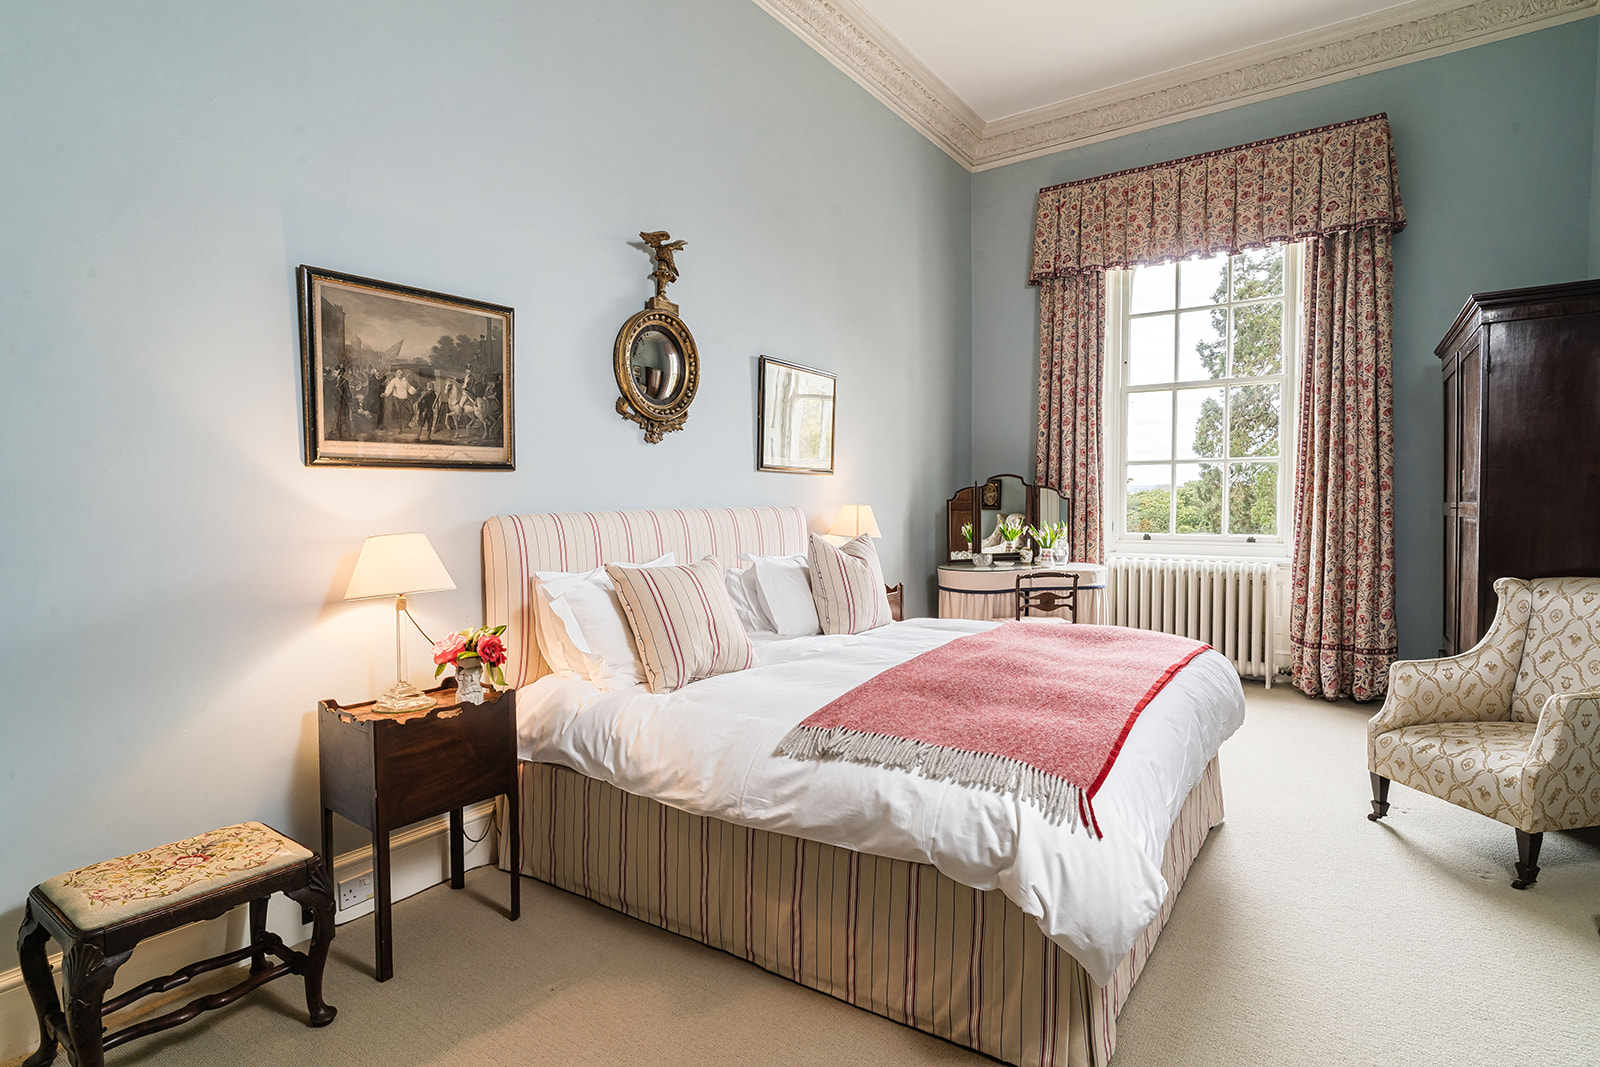 The Jonny room offers luxury accommodation in Hampshire.